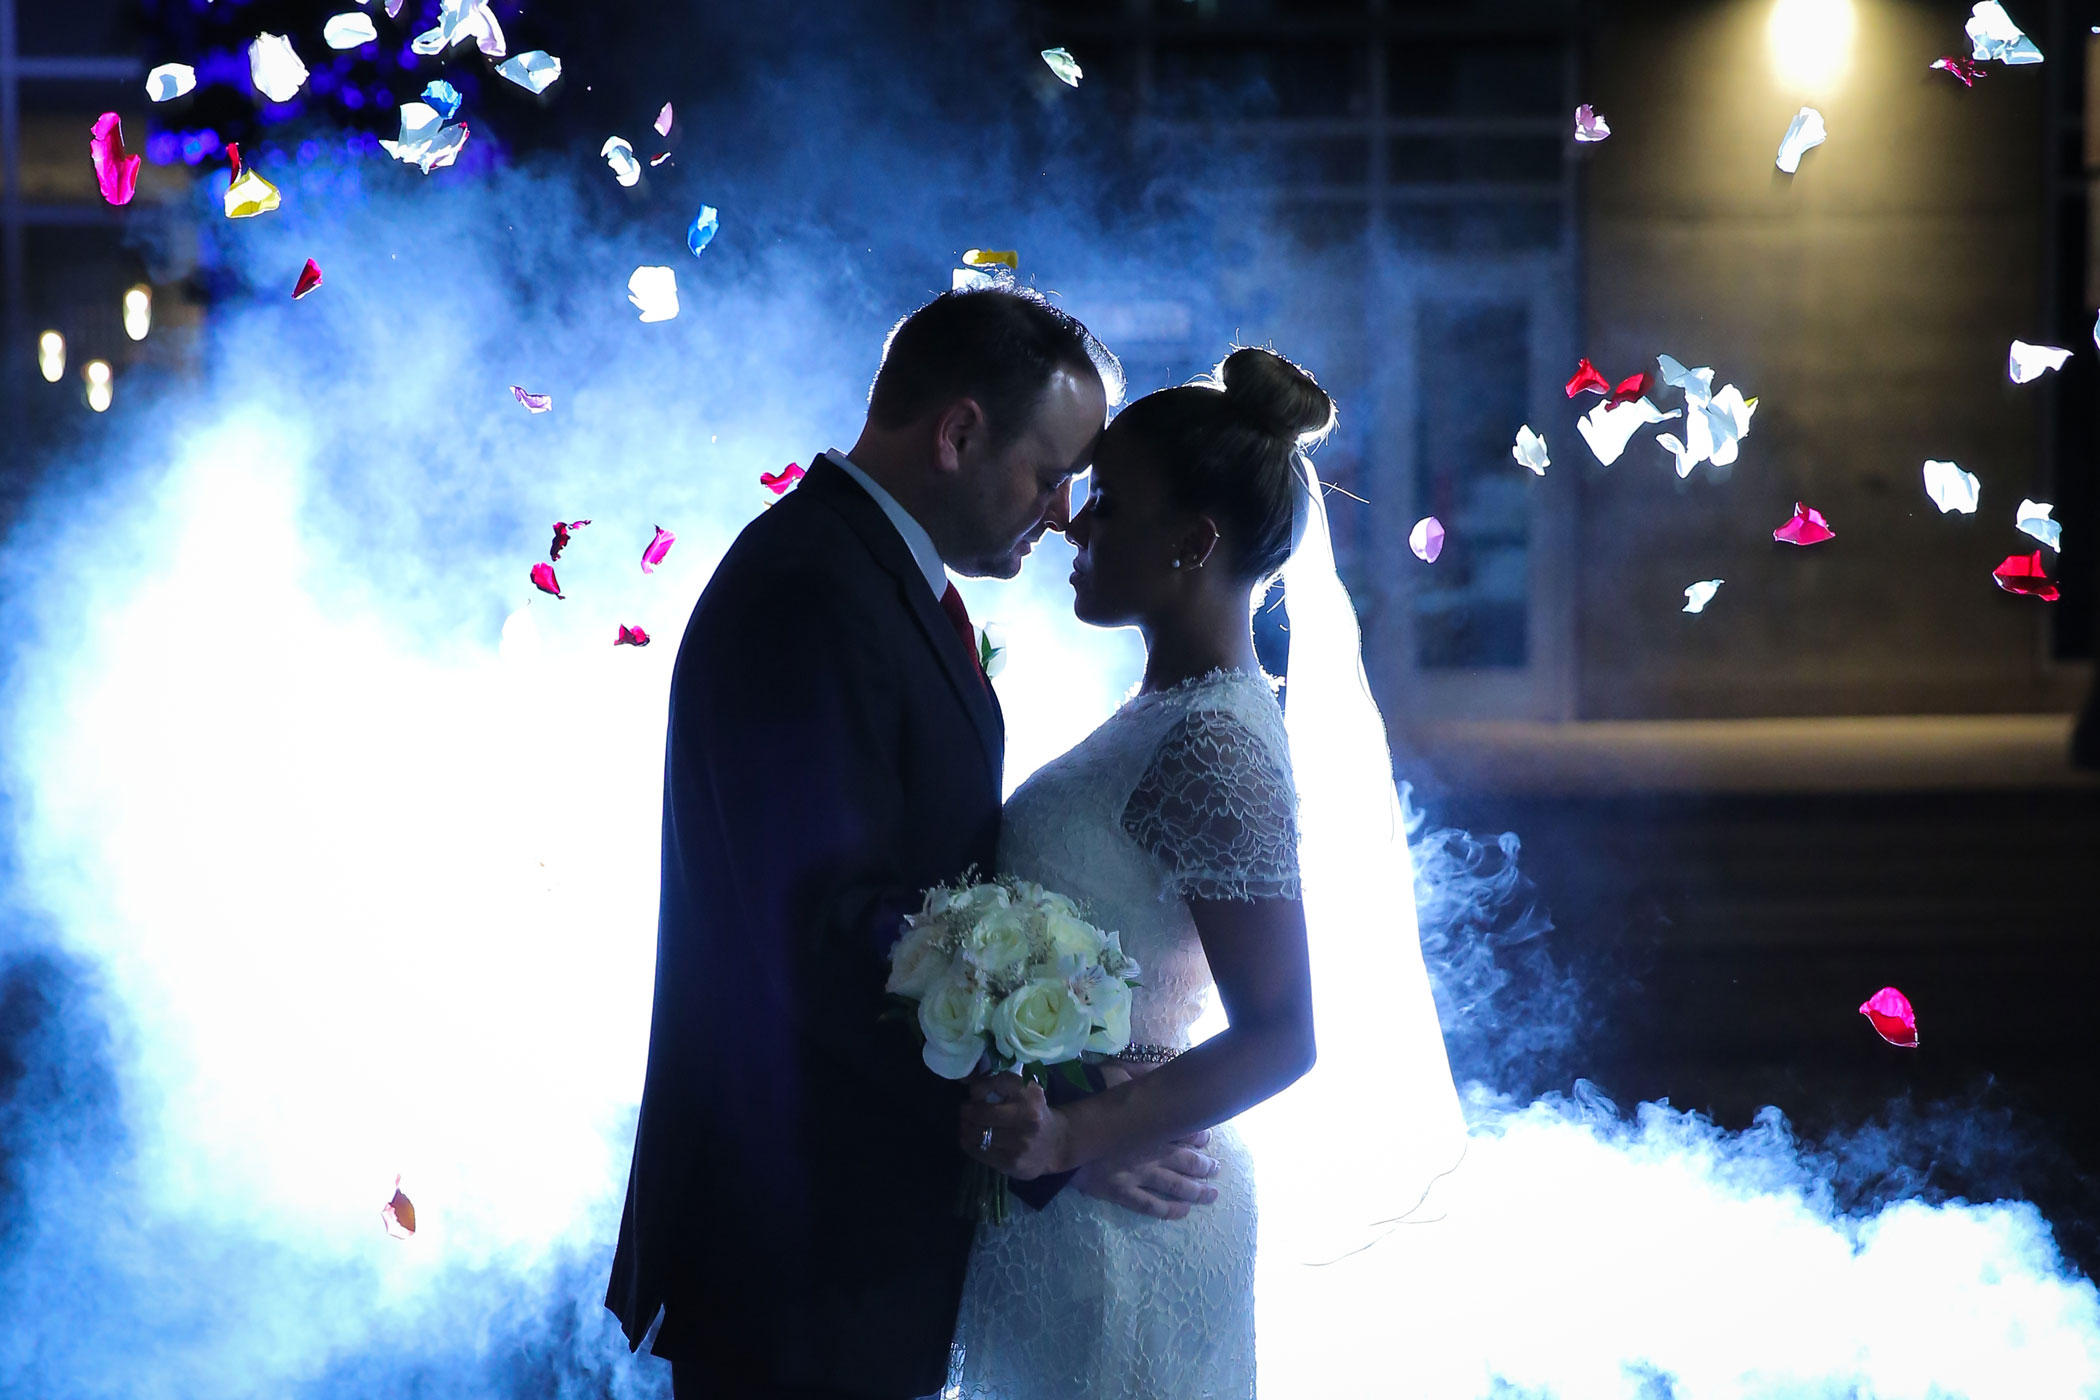 Vegas Weddings Launches The Majestic Wedding Package In Honor Of Royal